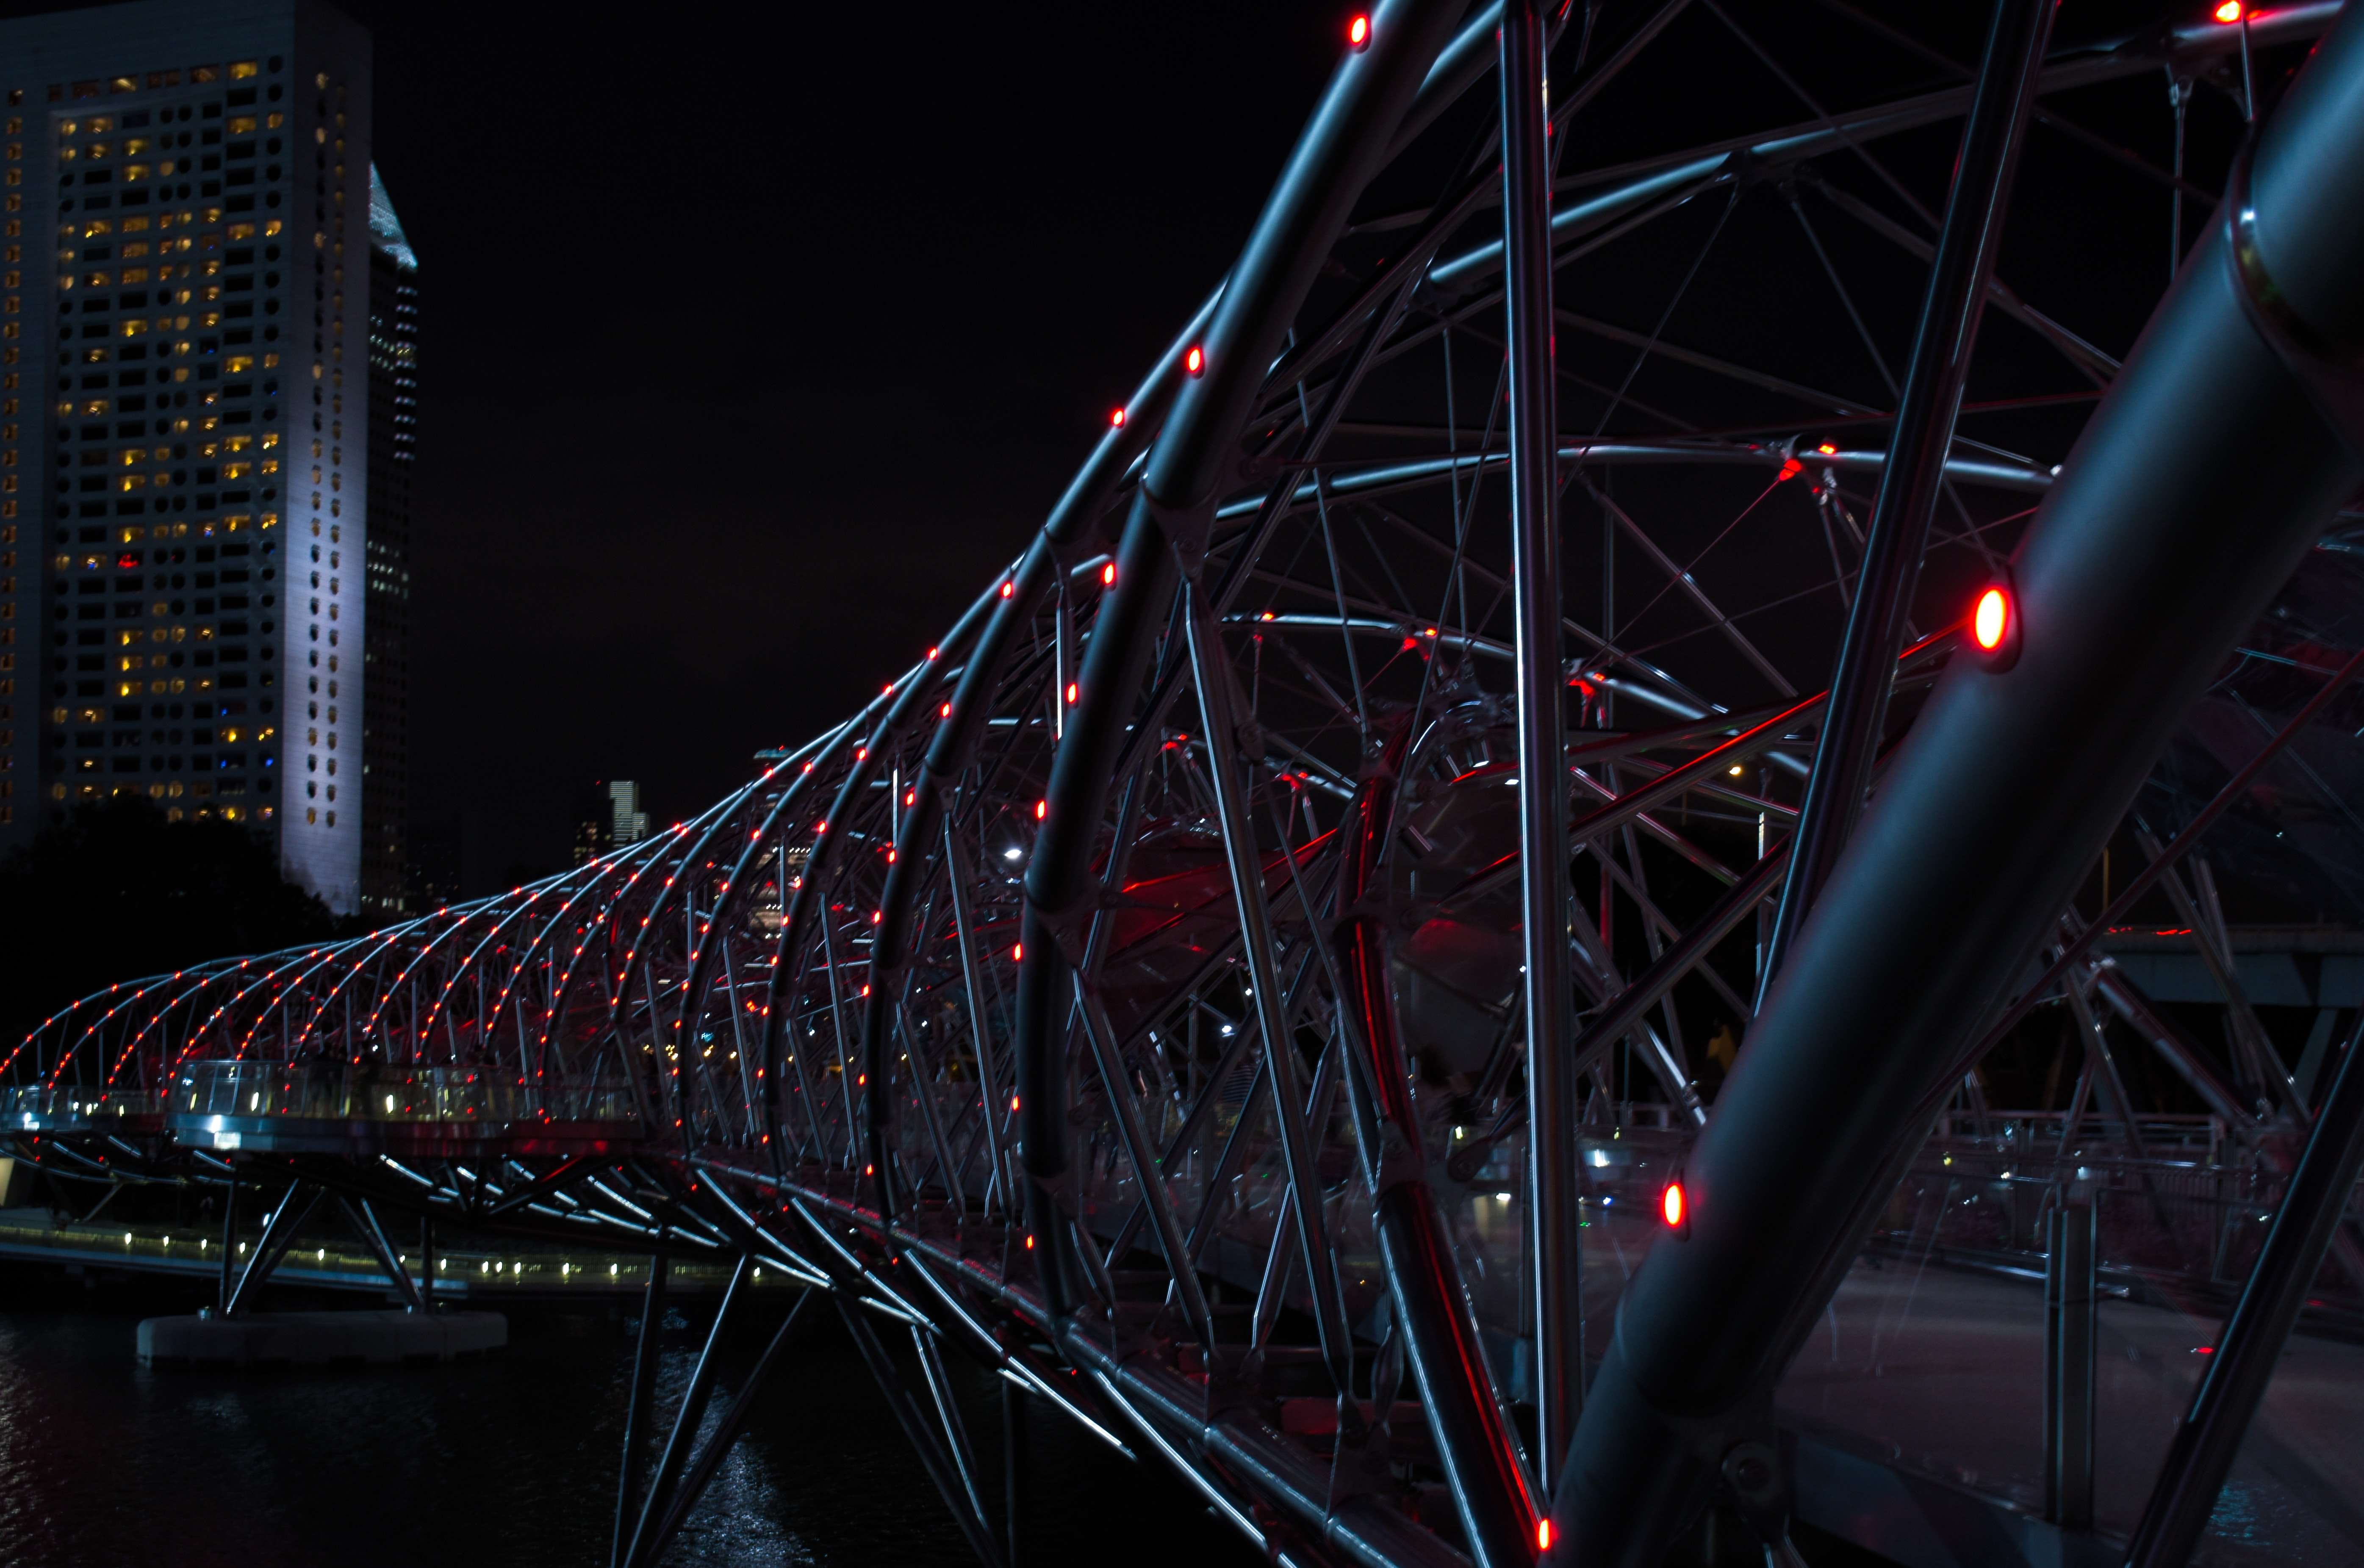 gray Helix Bridge with red lights at nighttime